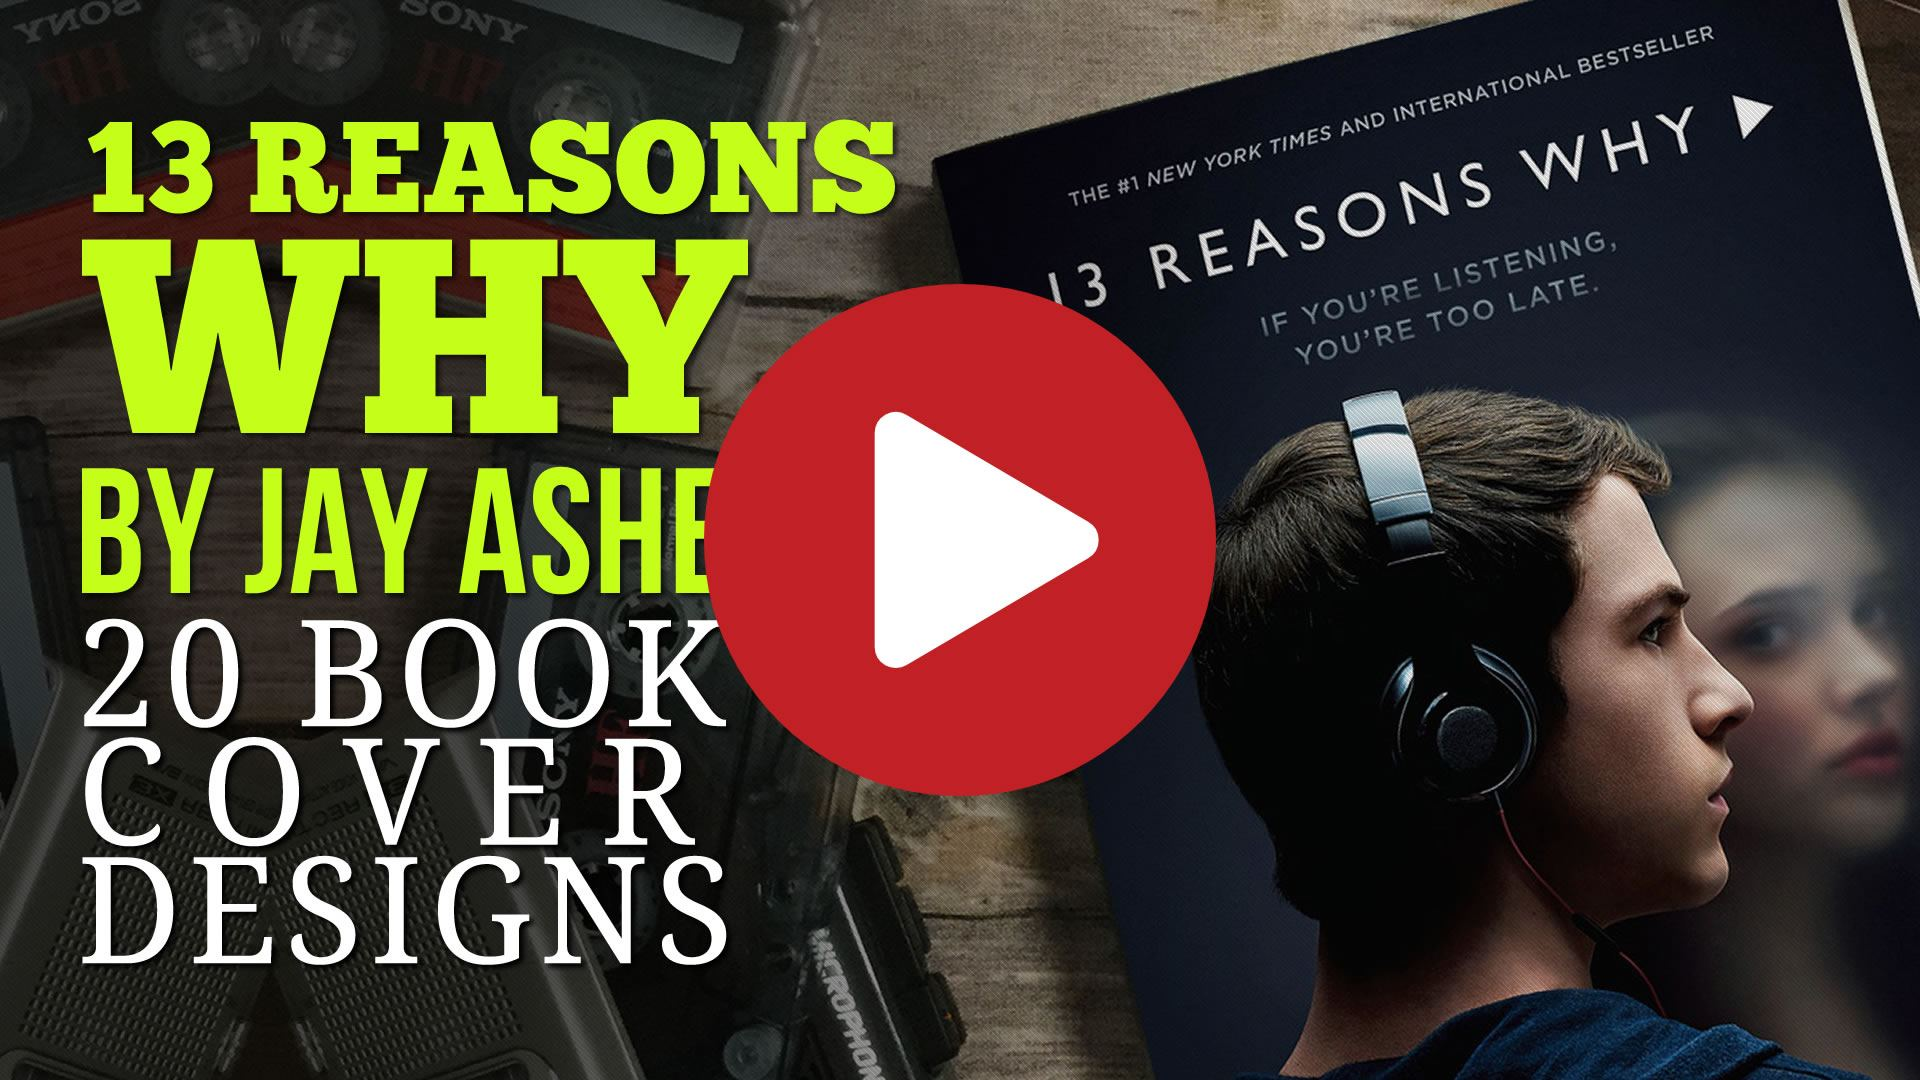 13 Reasons Why - 20 Book Cover Design Variations